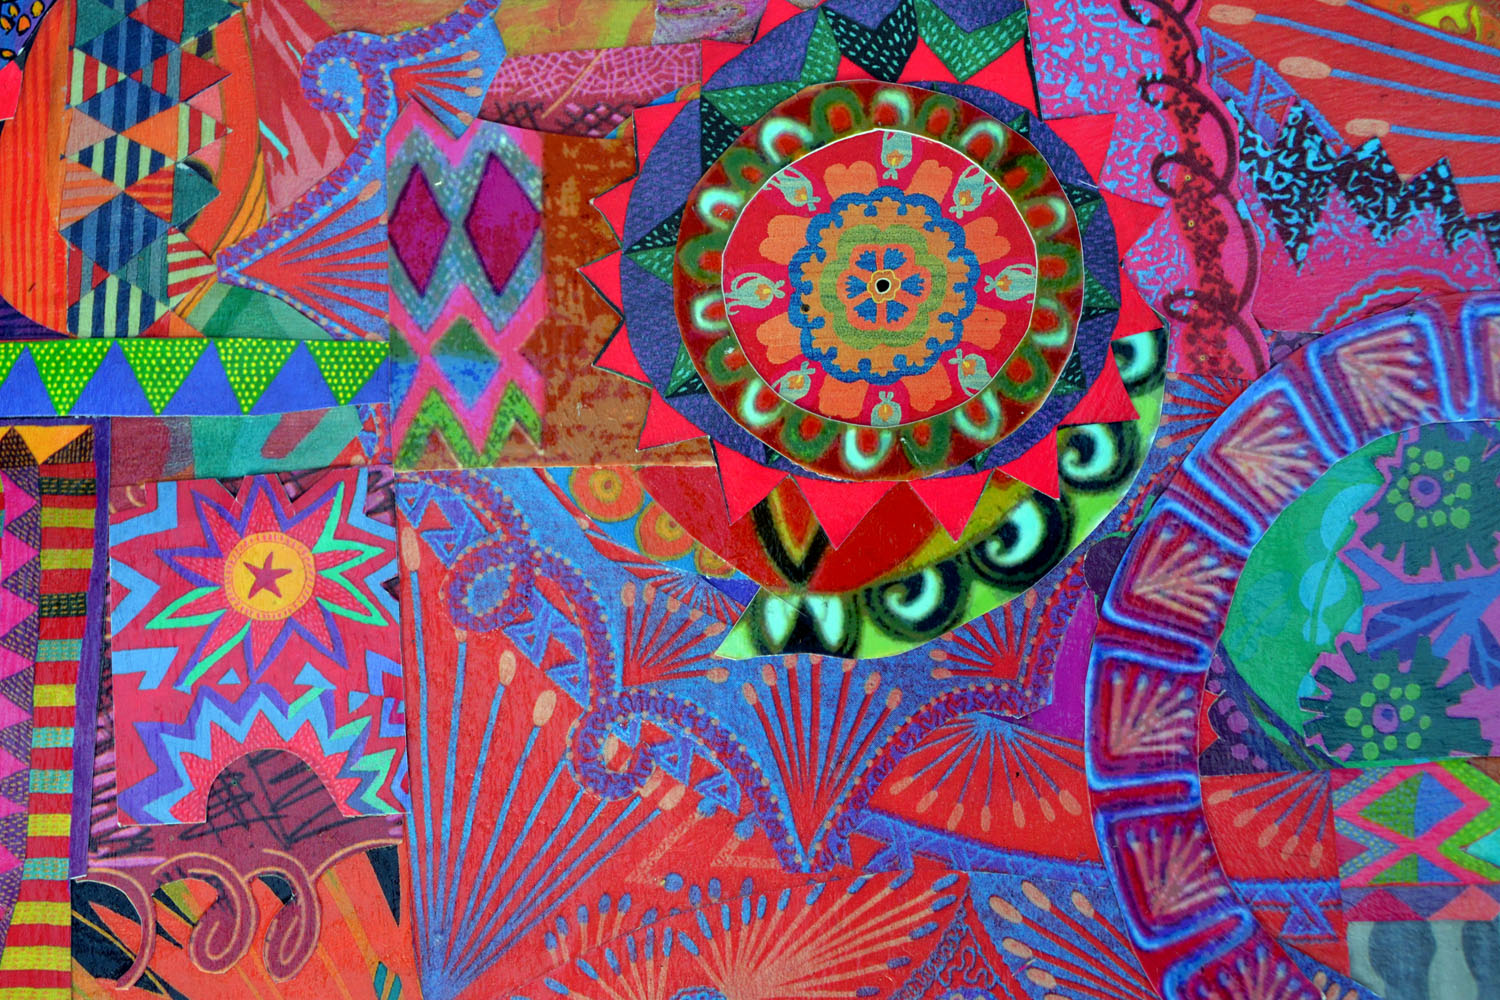 night circus 2-colorful-abstract-digital-art-collage-by-judi-magier.jpg